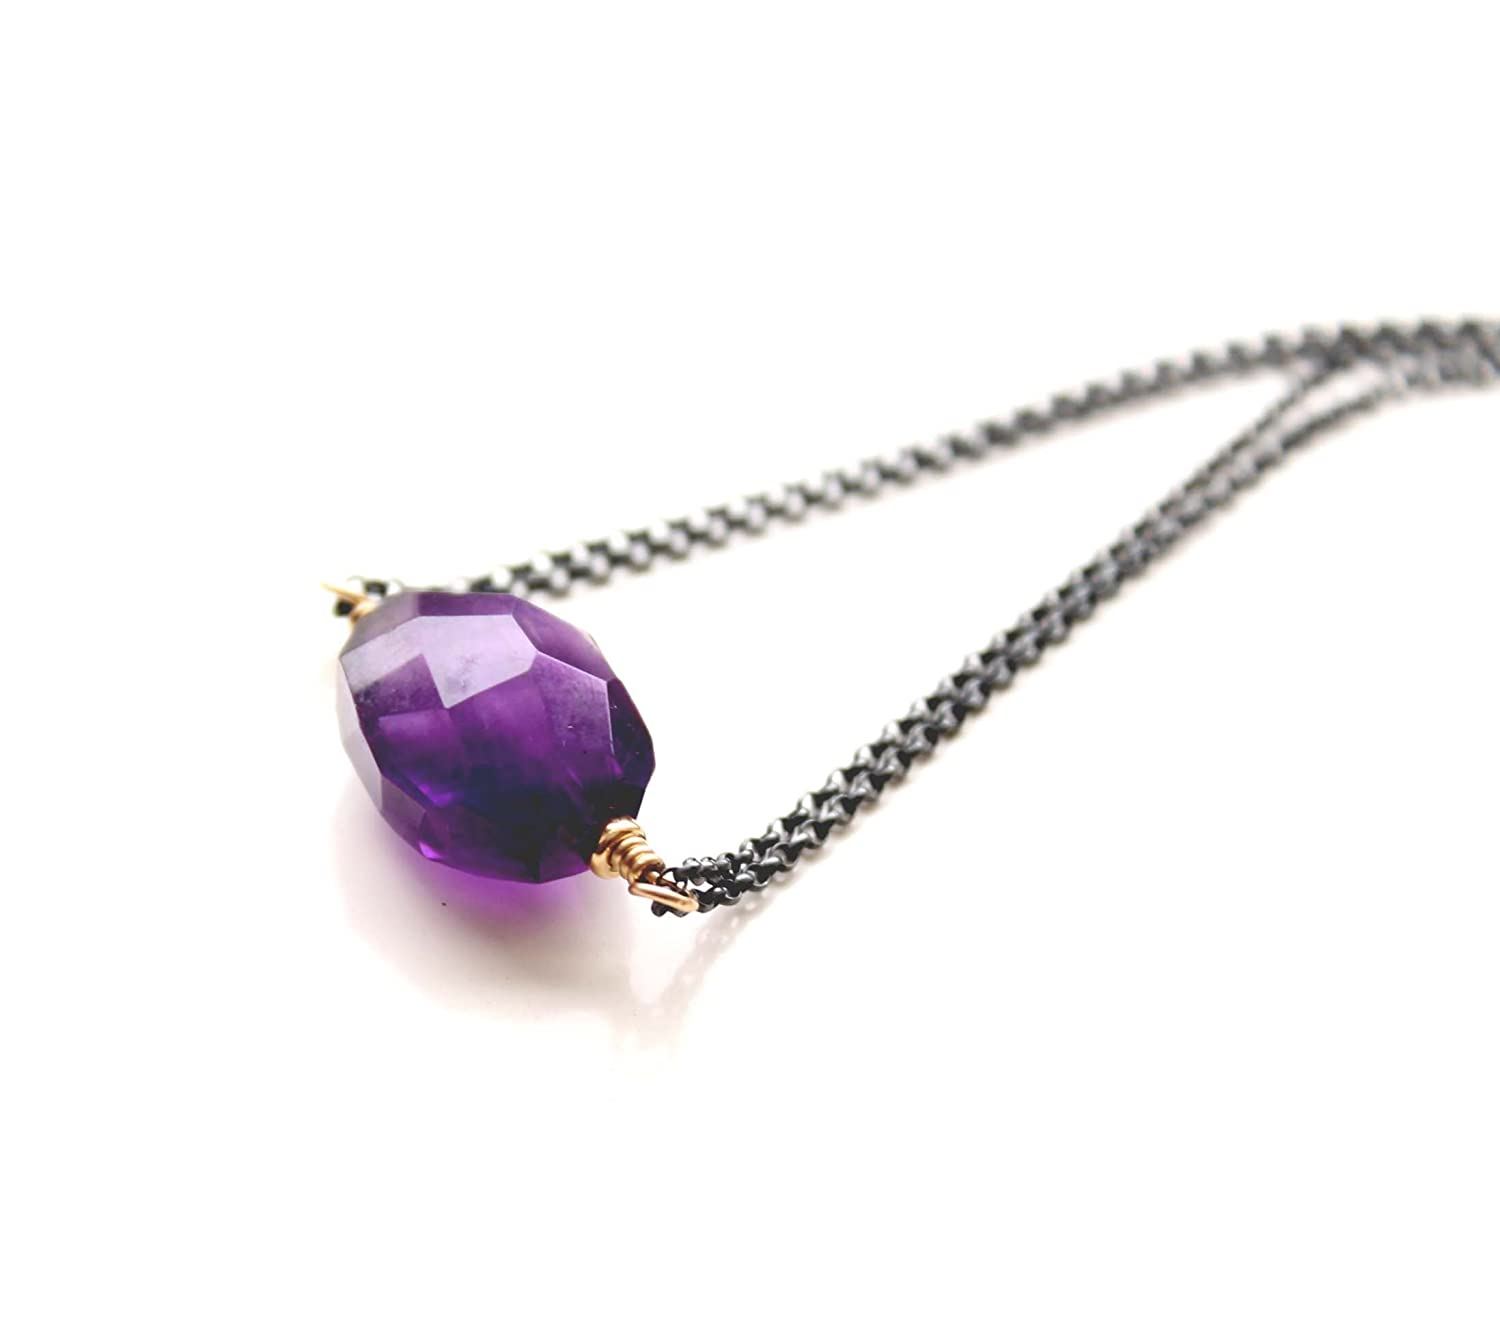 Natural Amethyst Pendant For Women February Mixed Shape Jewelry Chakra Healing Necklace Fashion Faceted